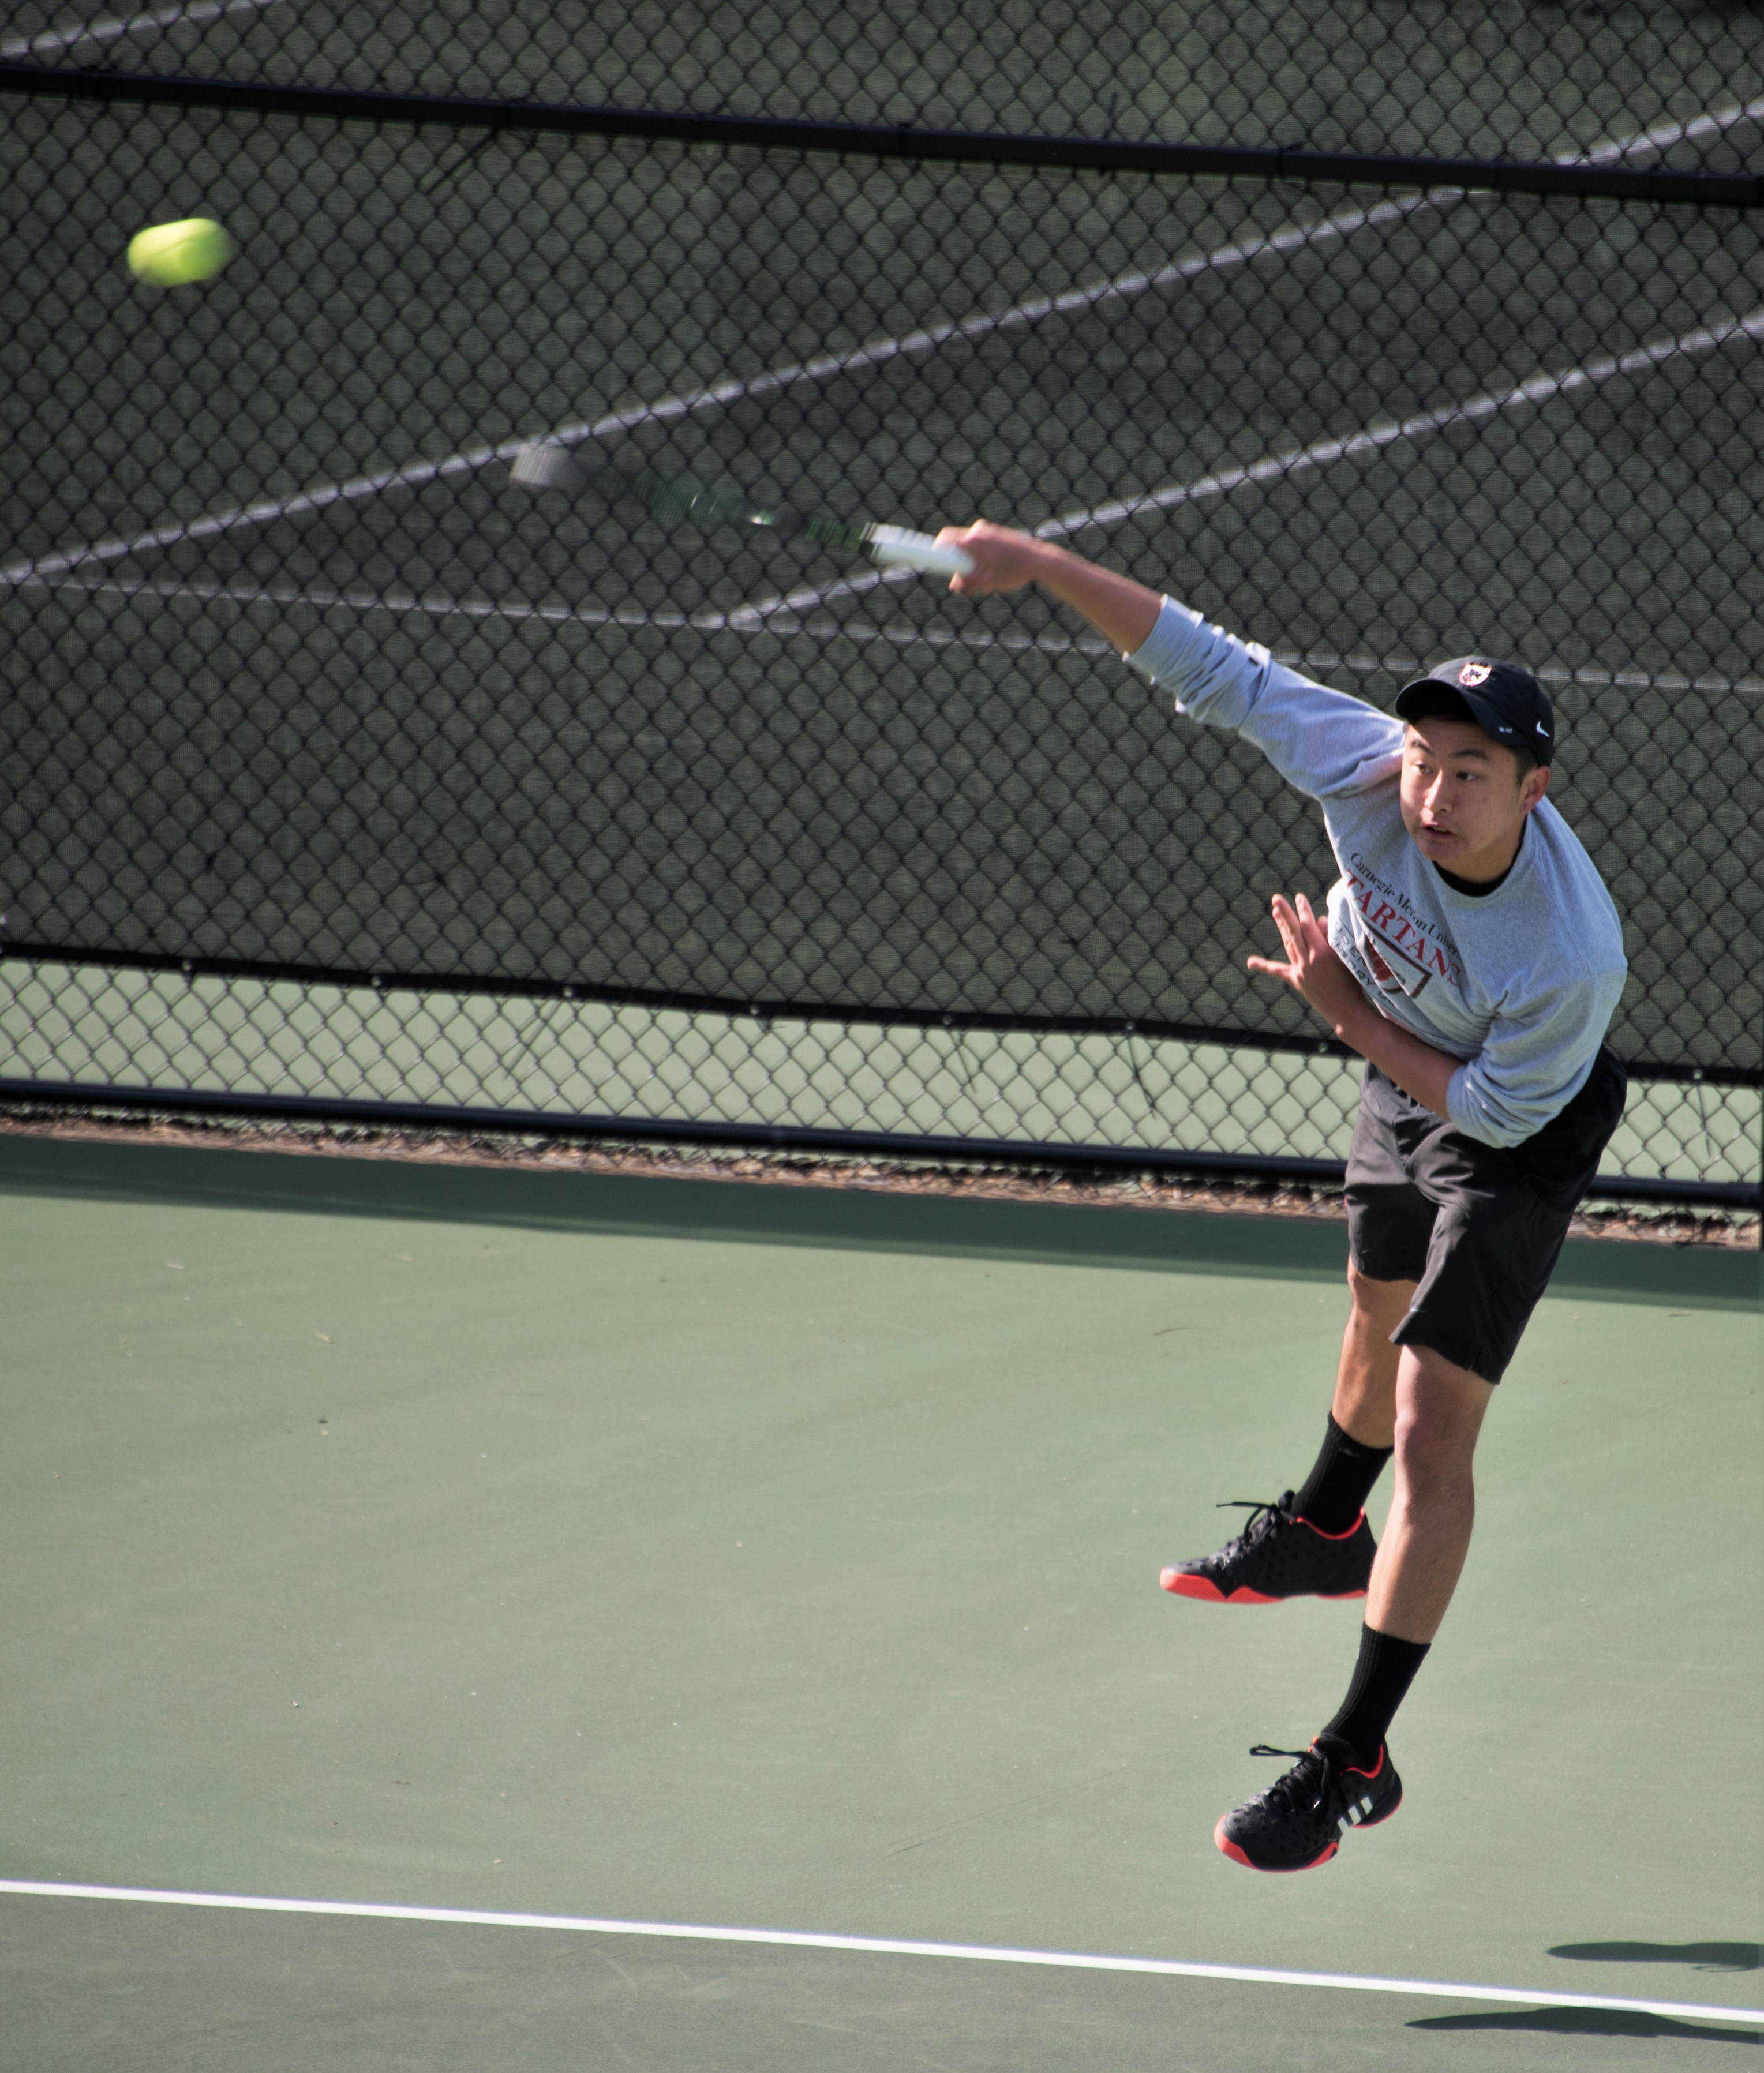 Junior Kenny Zheng leaps into the air to return a volley against Kenyon. (credit: Joshua Brown)